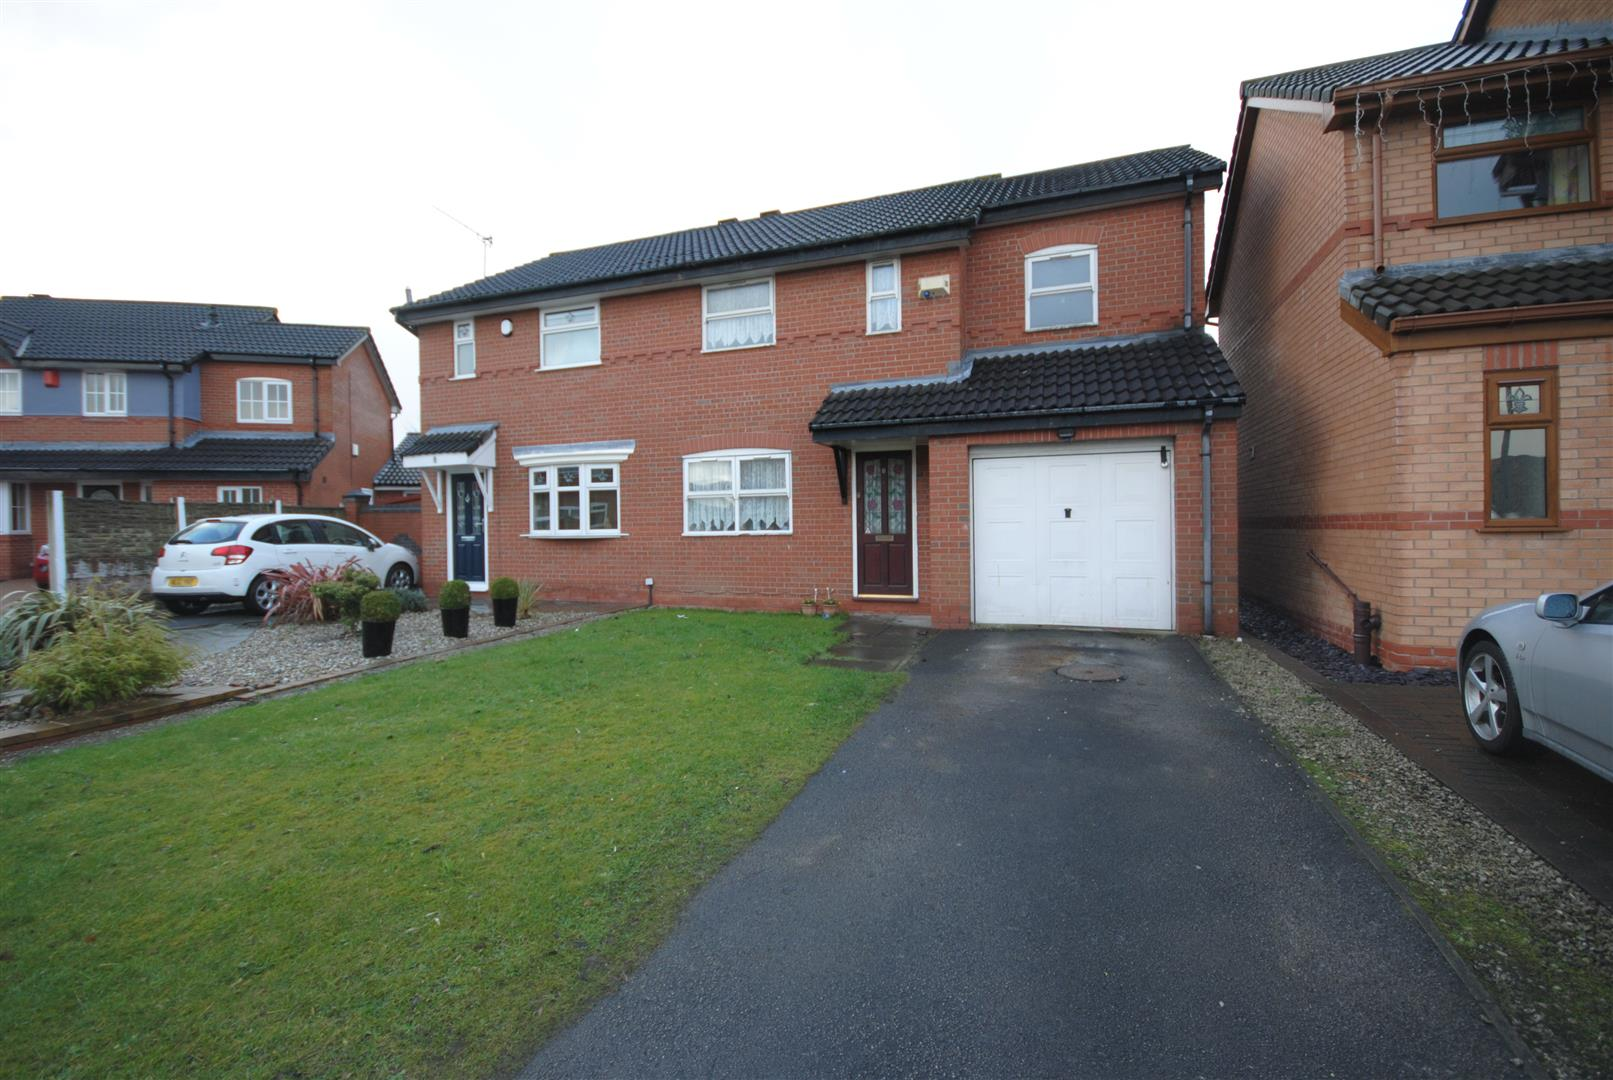 3 Bedrooms Semi Detached House for sale in The Covet, Springfield, Wigan